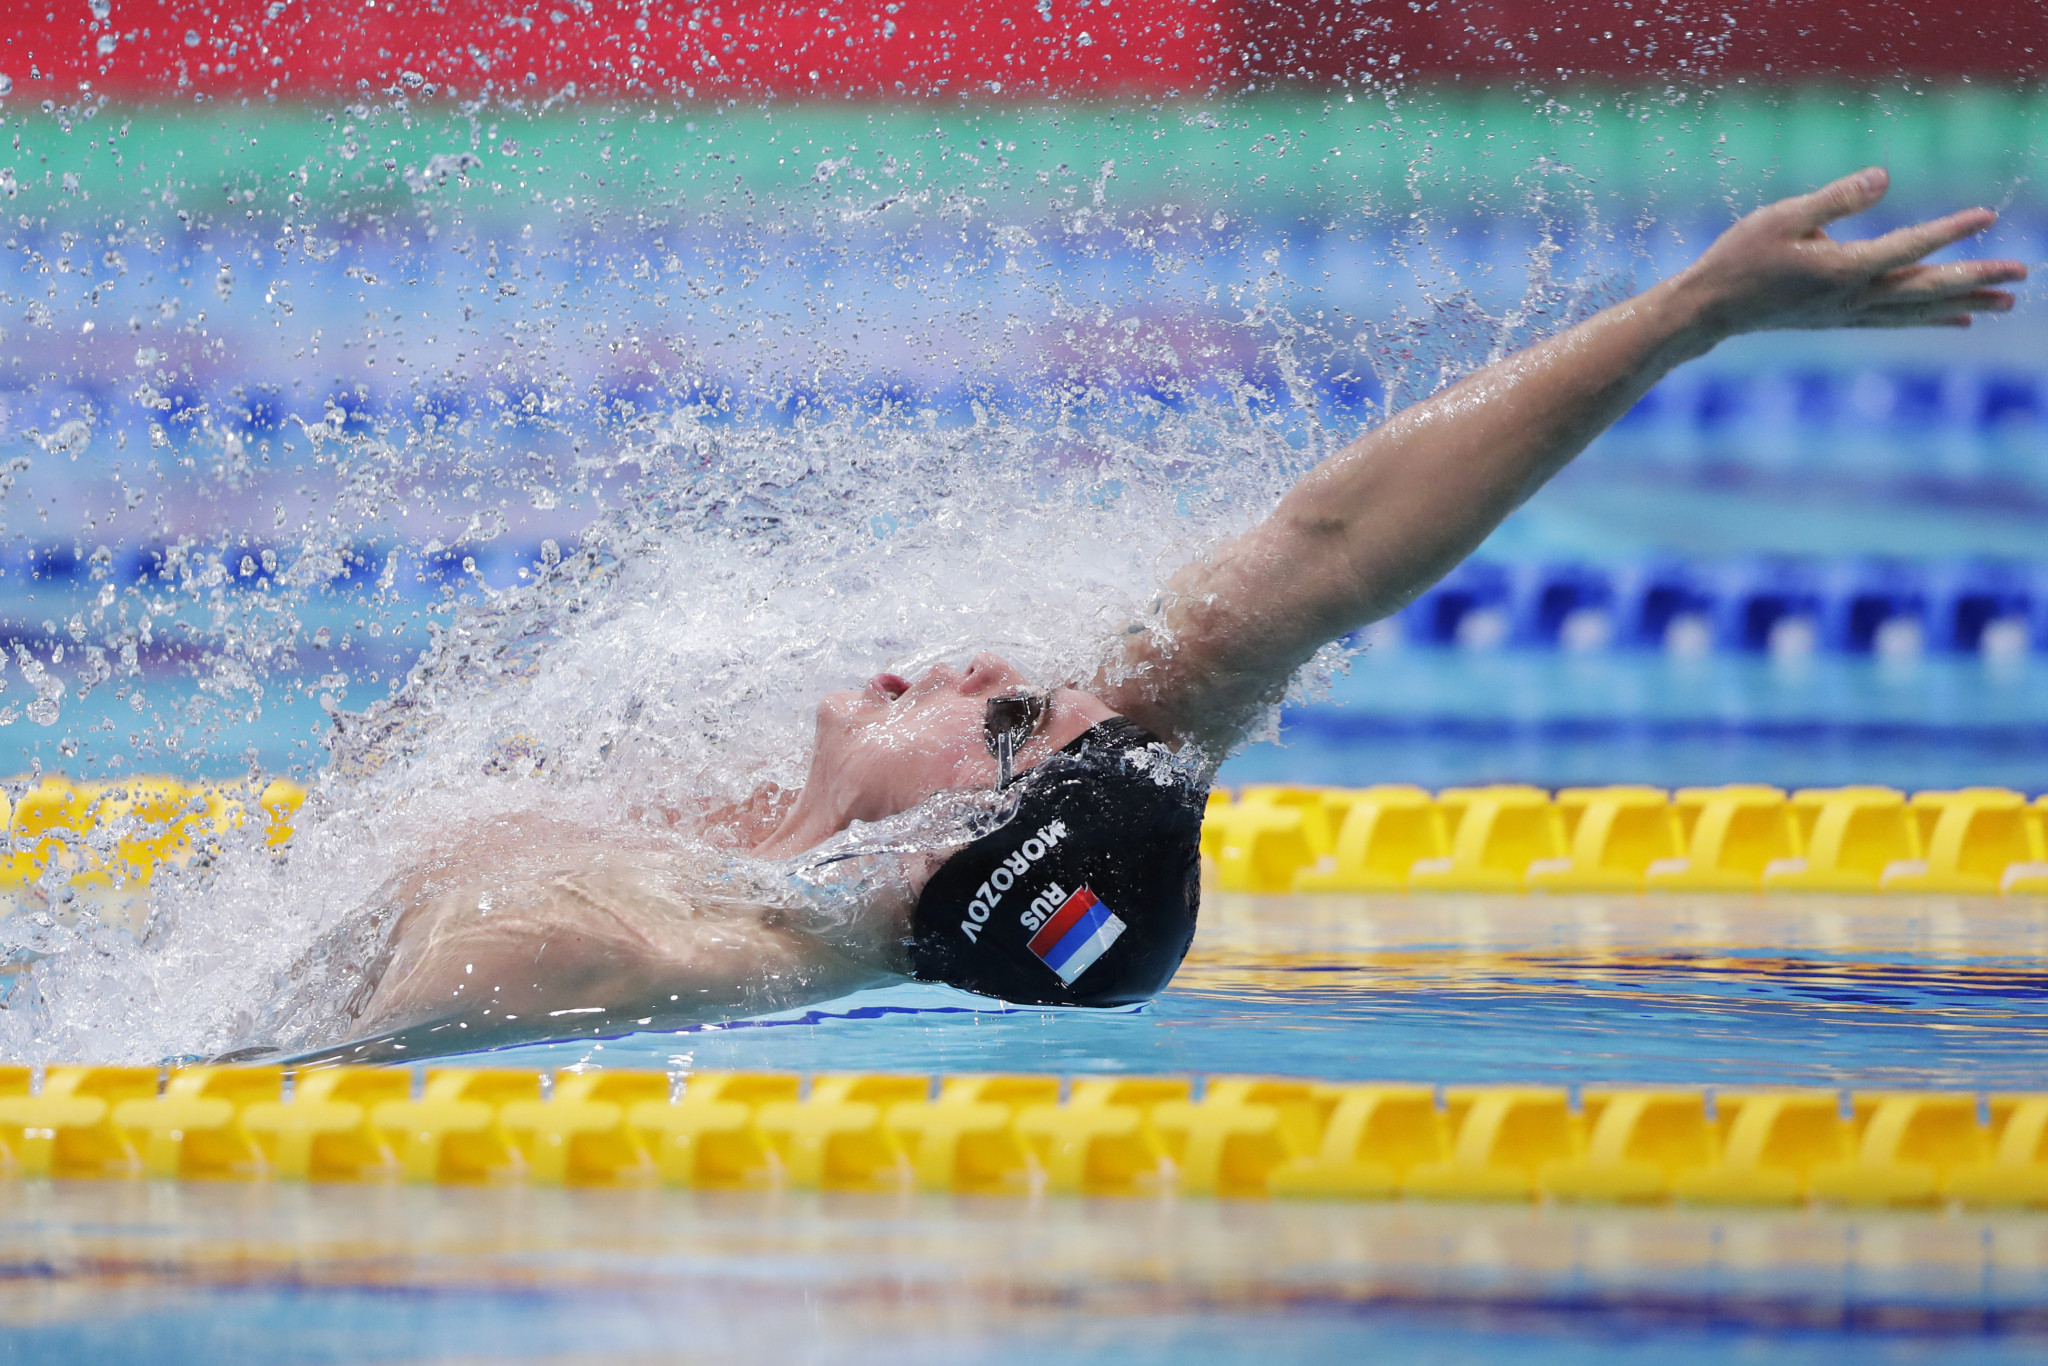 Vladimir Morozov of Russia set a World Cup record of 47.99sec in the 100m freestyle final in Jinan ©Getty Images